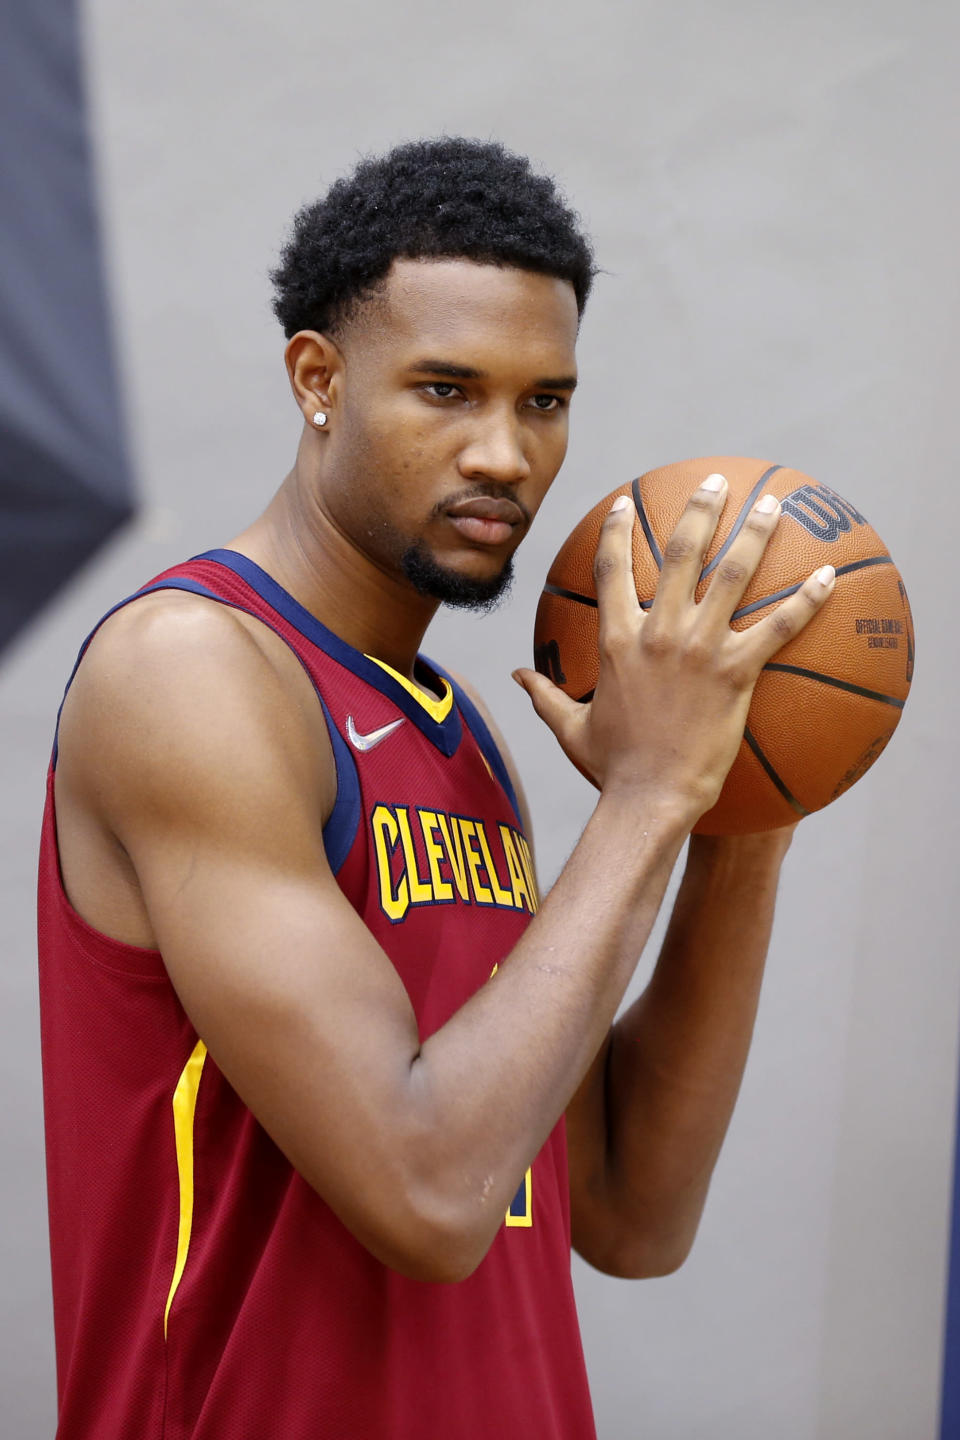 Cleveland Cavaliers' Evan Mobley poses for a portrait during the NBA basketball team's media day, Monday, Sept. 27, 2021, in Independence, Ohio. (AP Photo/Ron Schwane)